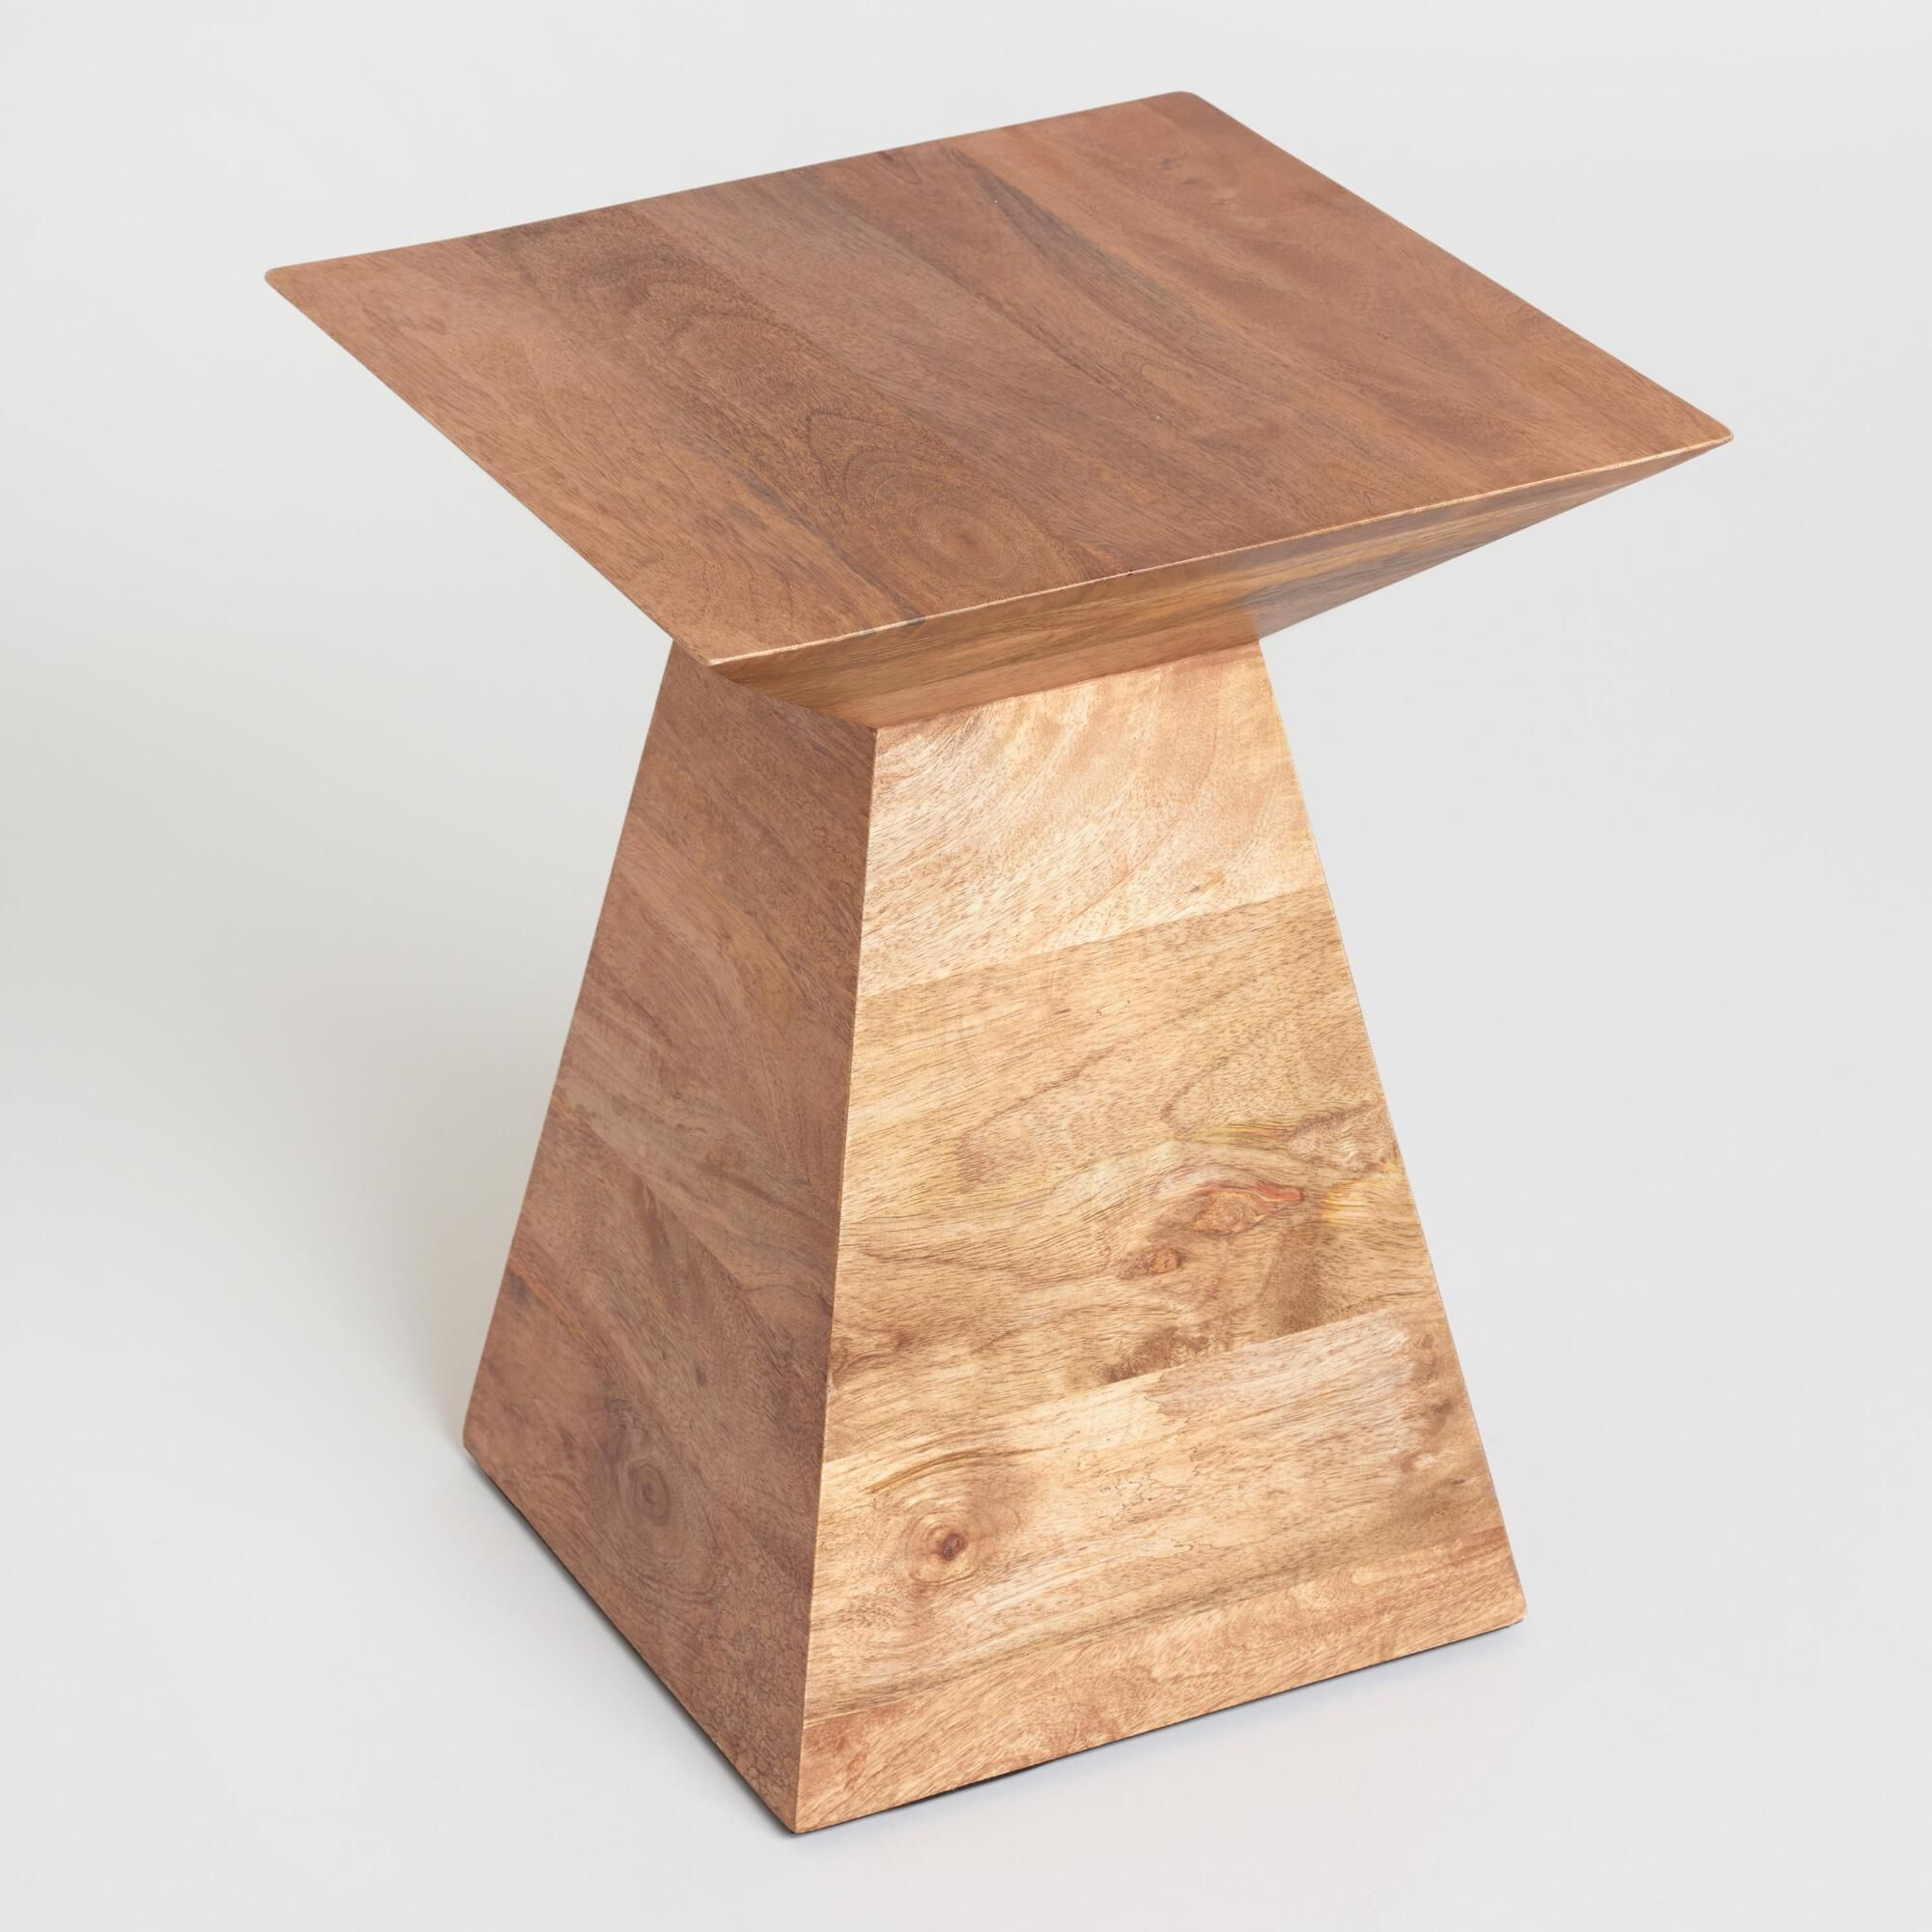 wood anton accent table natural world market products dark marble coffee black and gold decorations ashley furniture king small metal patio inch round tablecloth square occasional